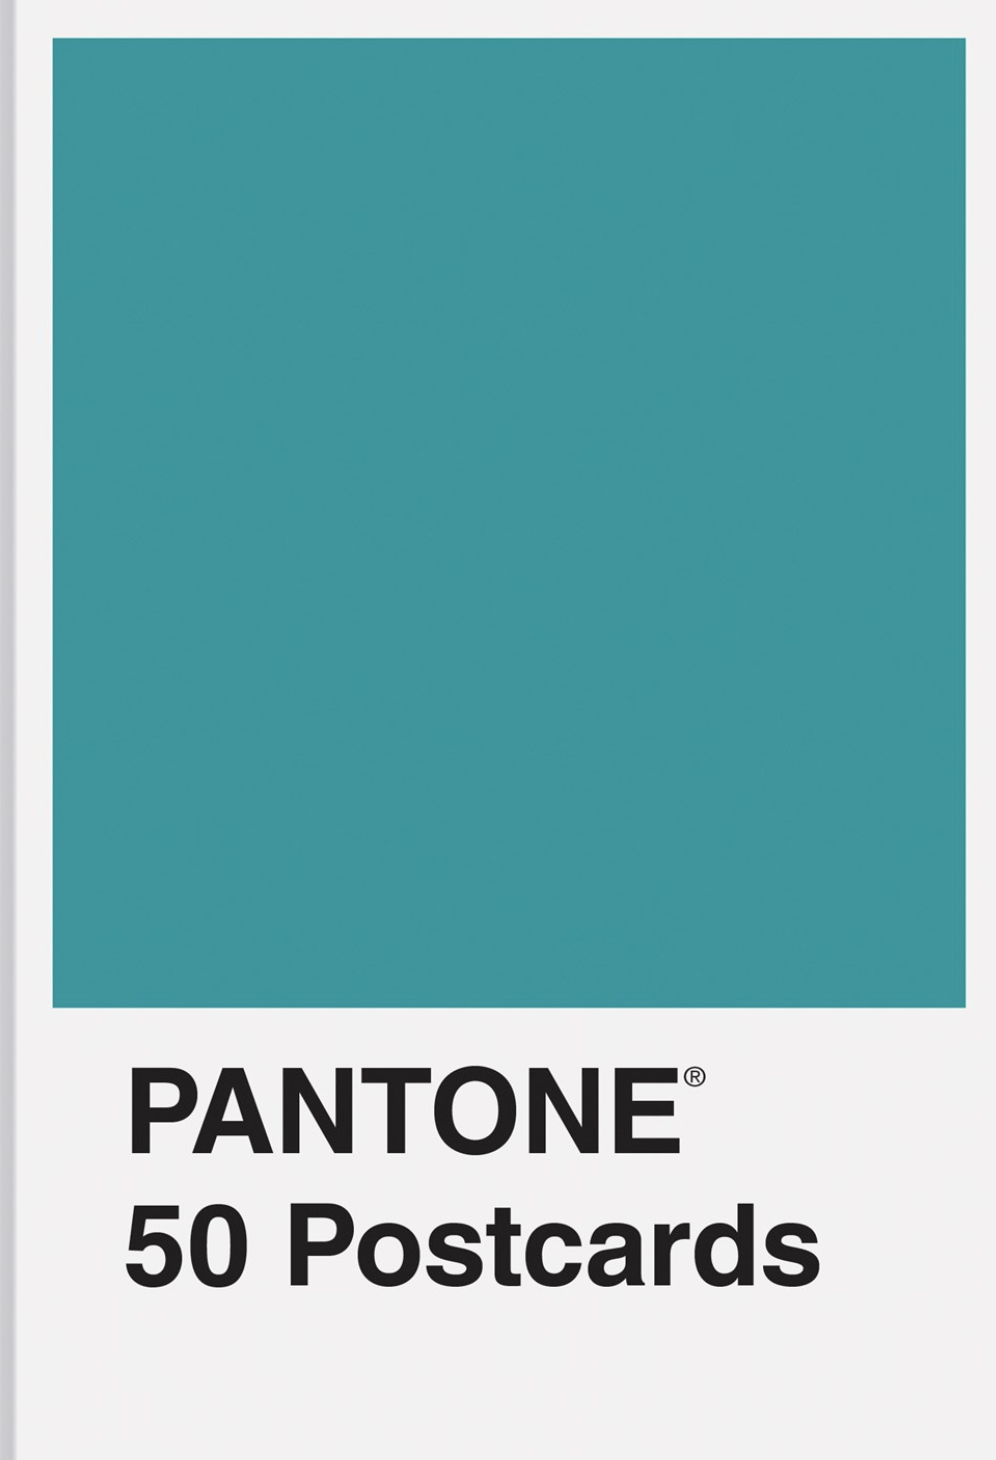 Pantone 50 Postcards - Adele Gilani Art Gallery